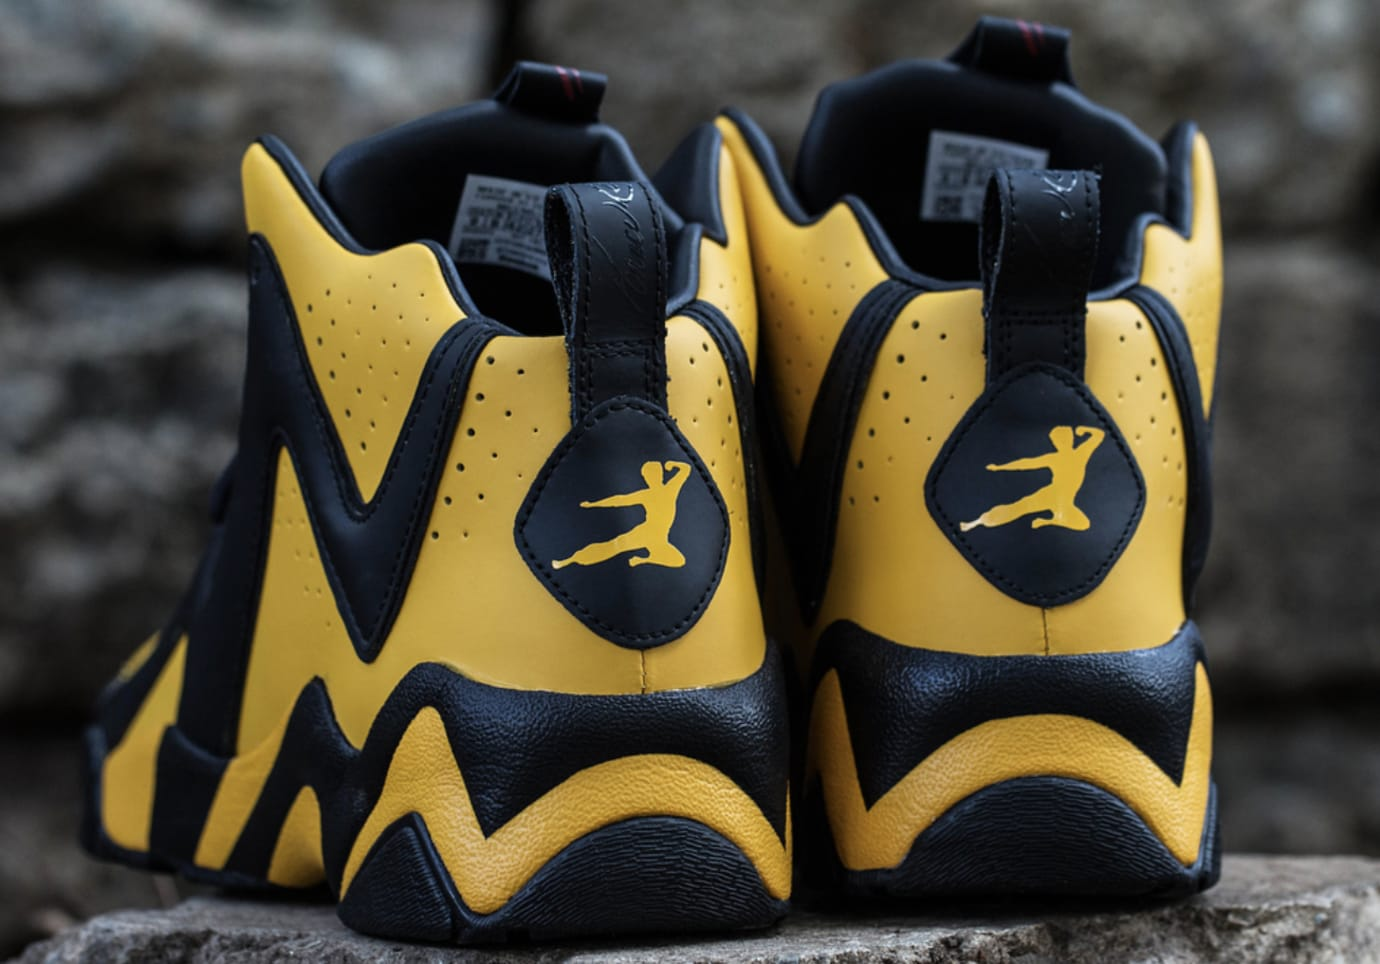 brand new b05a6 be2ed Bait x Bruce Lee x Reebok Kamikaze II Official Images | Sole ...